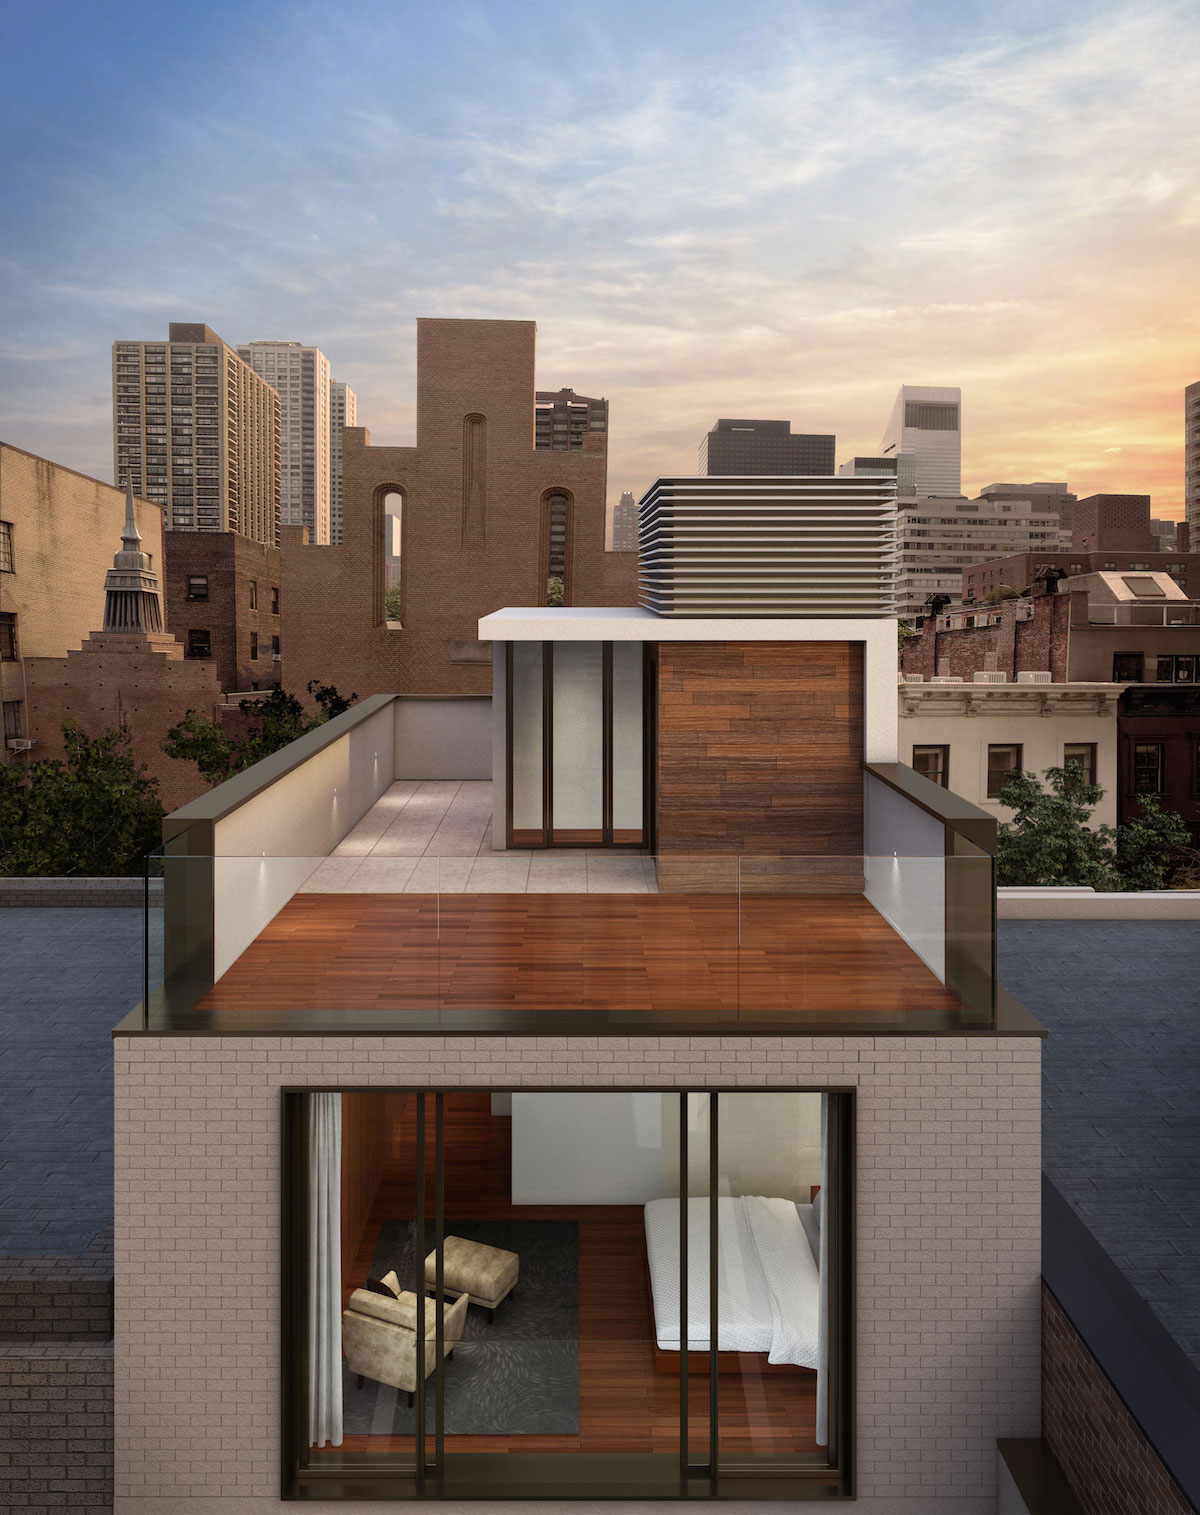 The roof deck of 251 East 61st Street, rendering by TRA Studio